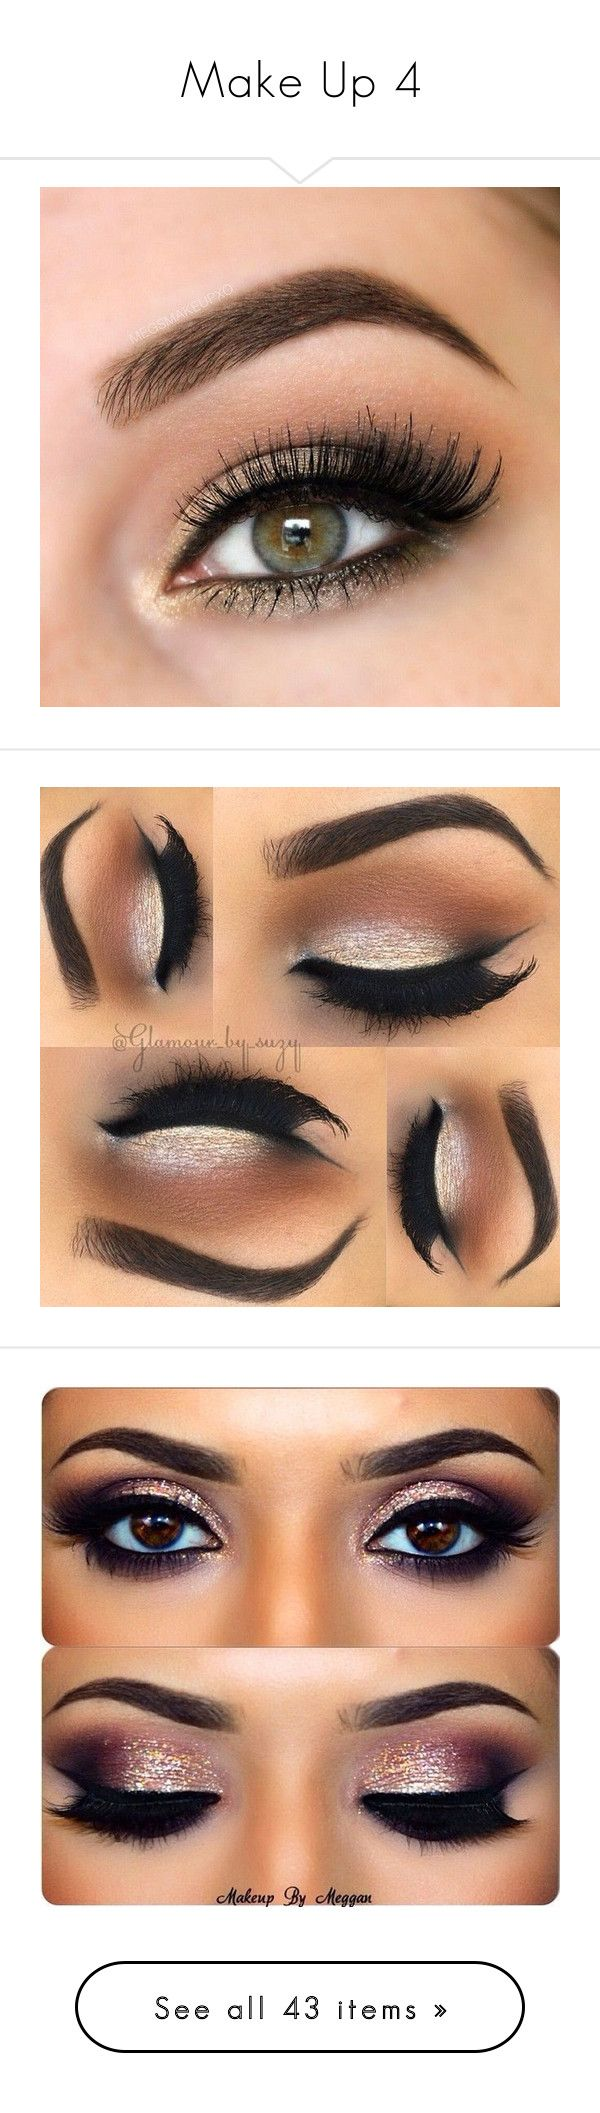 """""""Make Up 4"""" by the-walking-dez ❤ liked on Polyvore featuring beauty products, makeup, eye makeup, eyes, beauty, make, eyeshadow, palette eyeshadow, eye brow makeup and gel eye liner"""